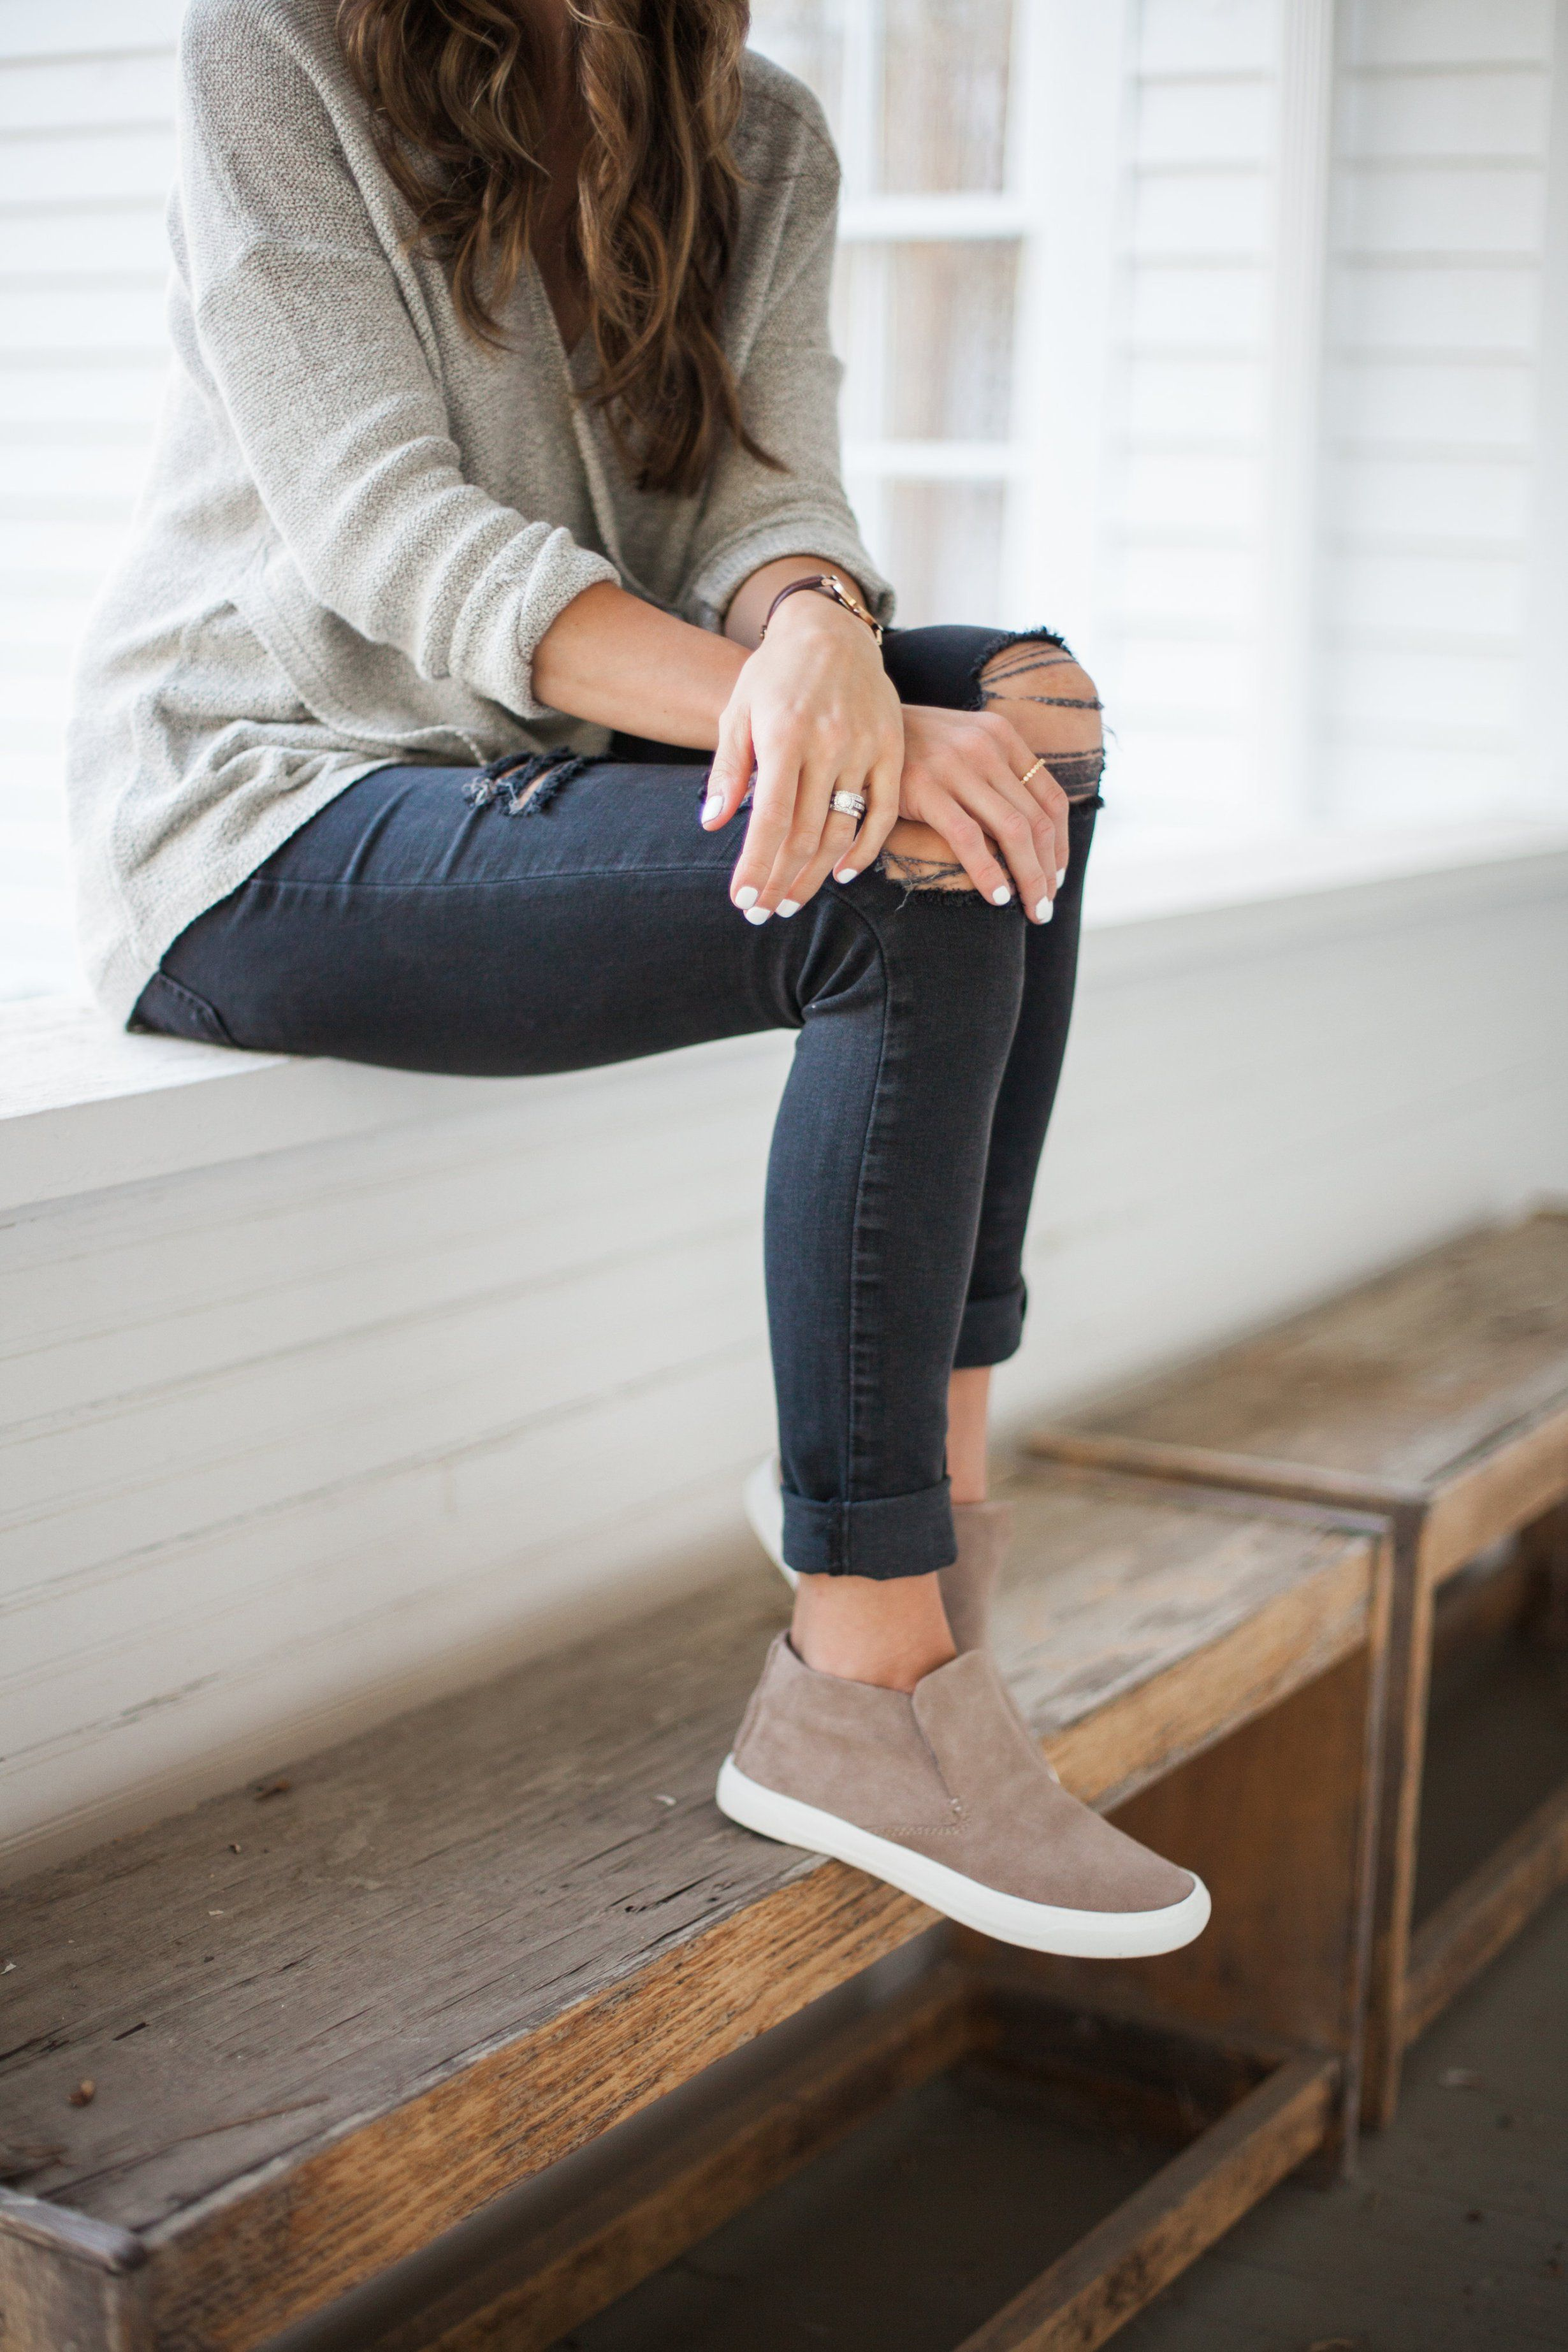 b2b75cb2129 Style // Chic Sneakers You Need Right Now - Lauren McBride. Jeans A casual  fall outfit ...